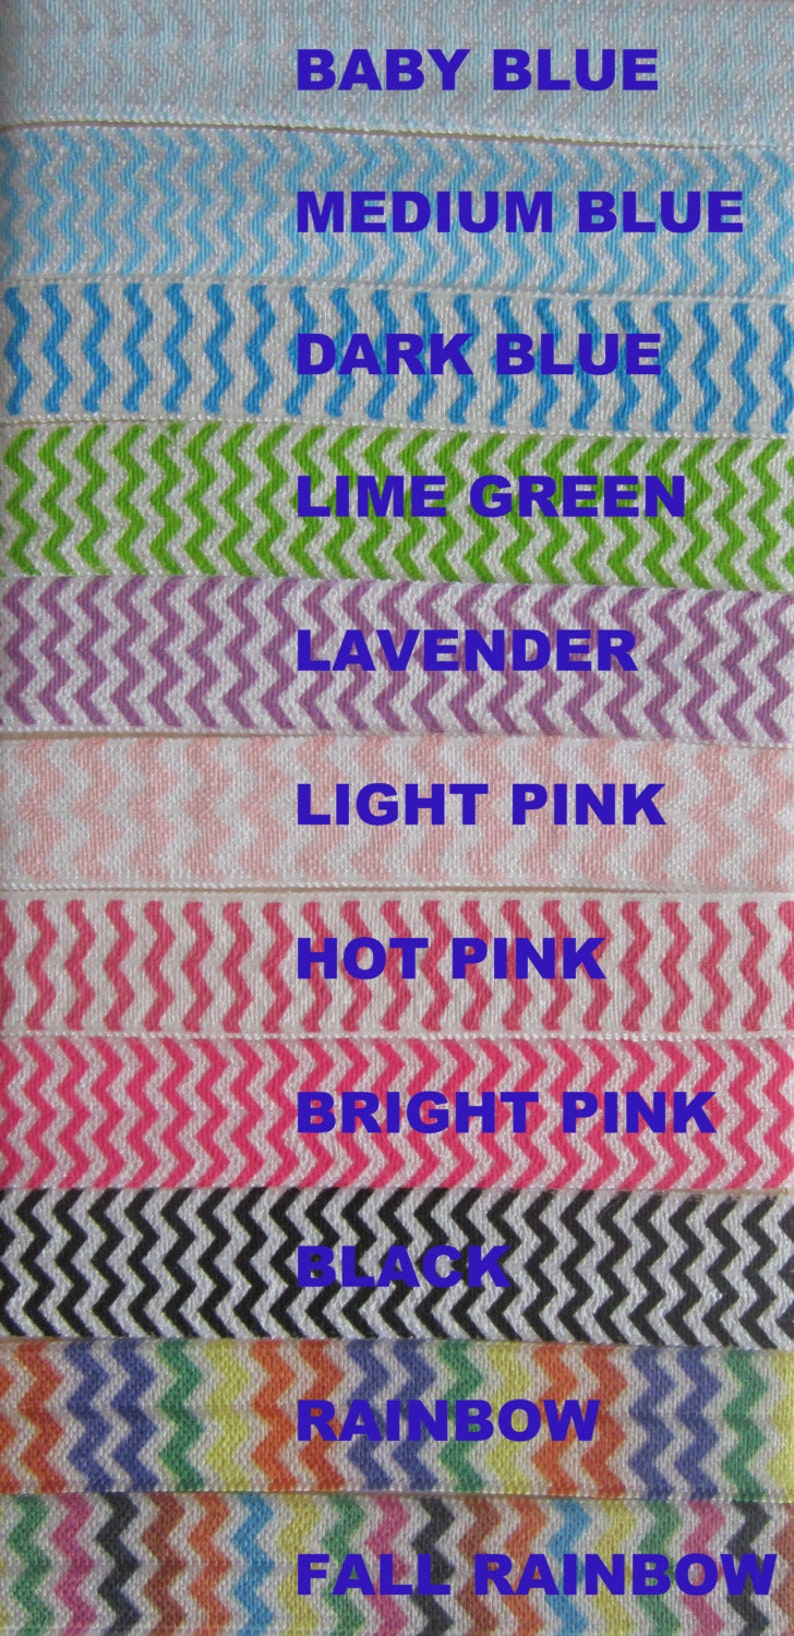 CLEARANCE  5 yards CHEVRON Prints by the YARD choose your image 0